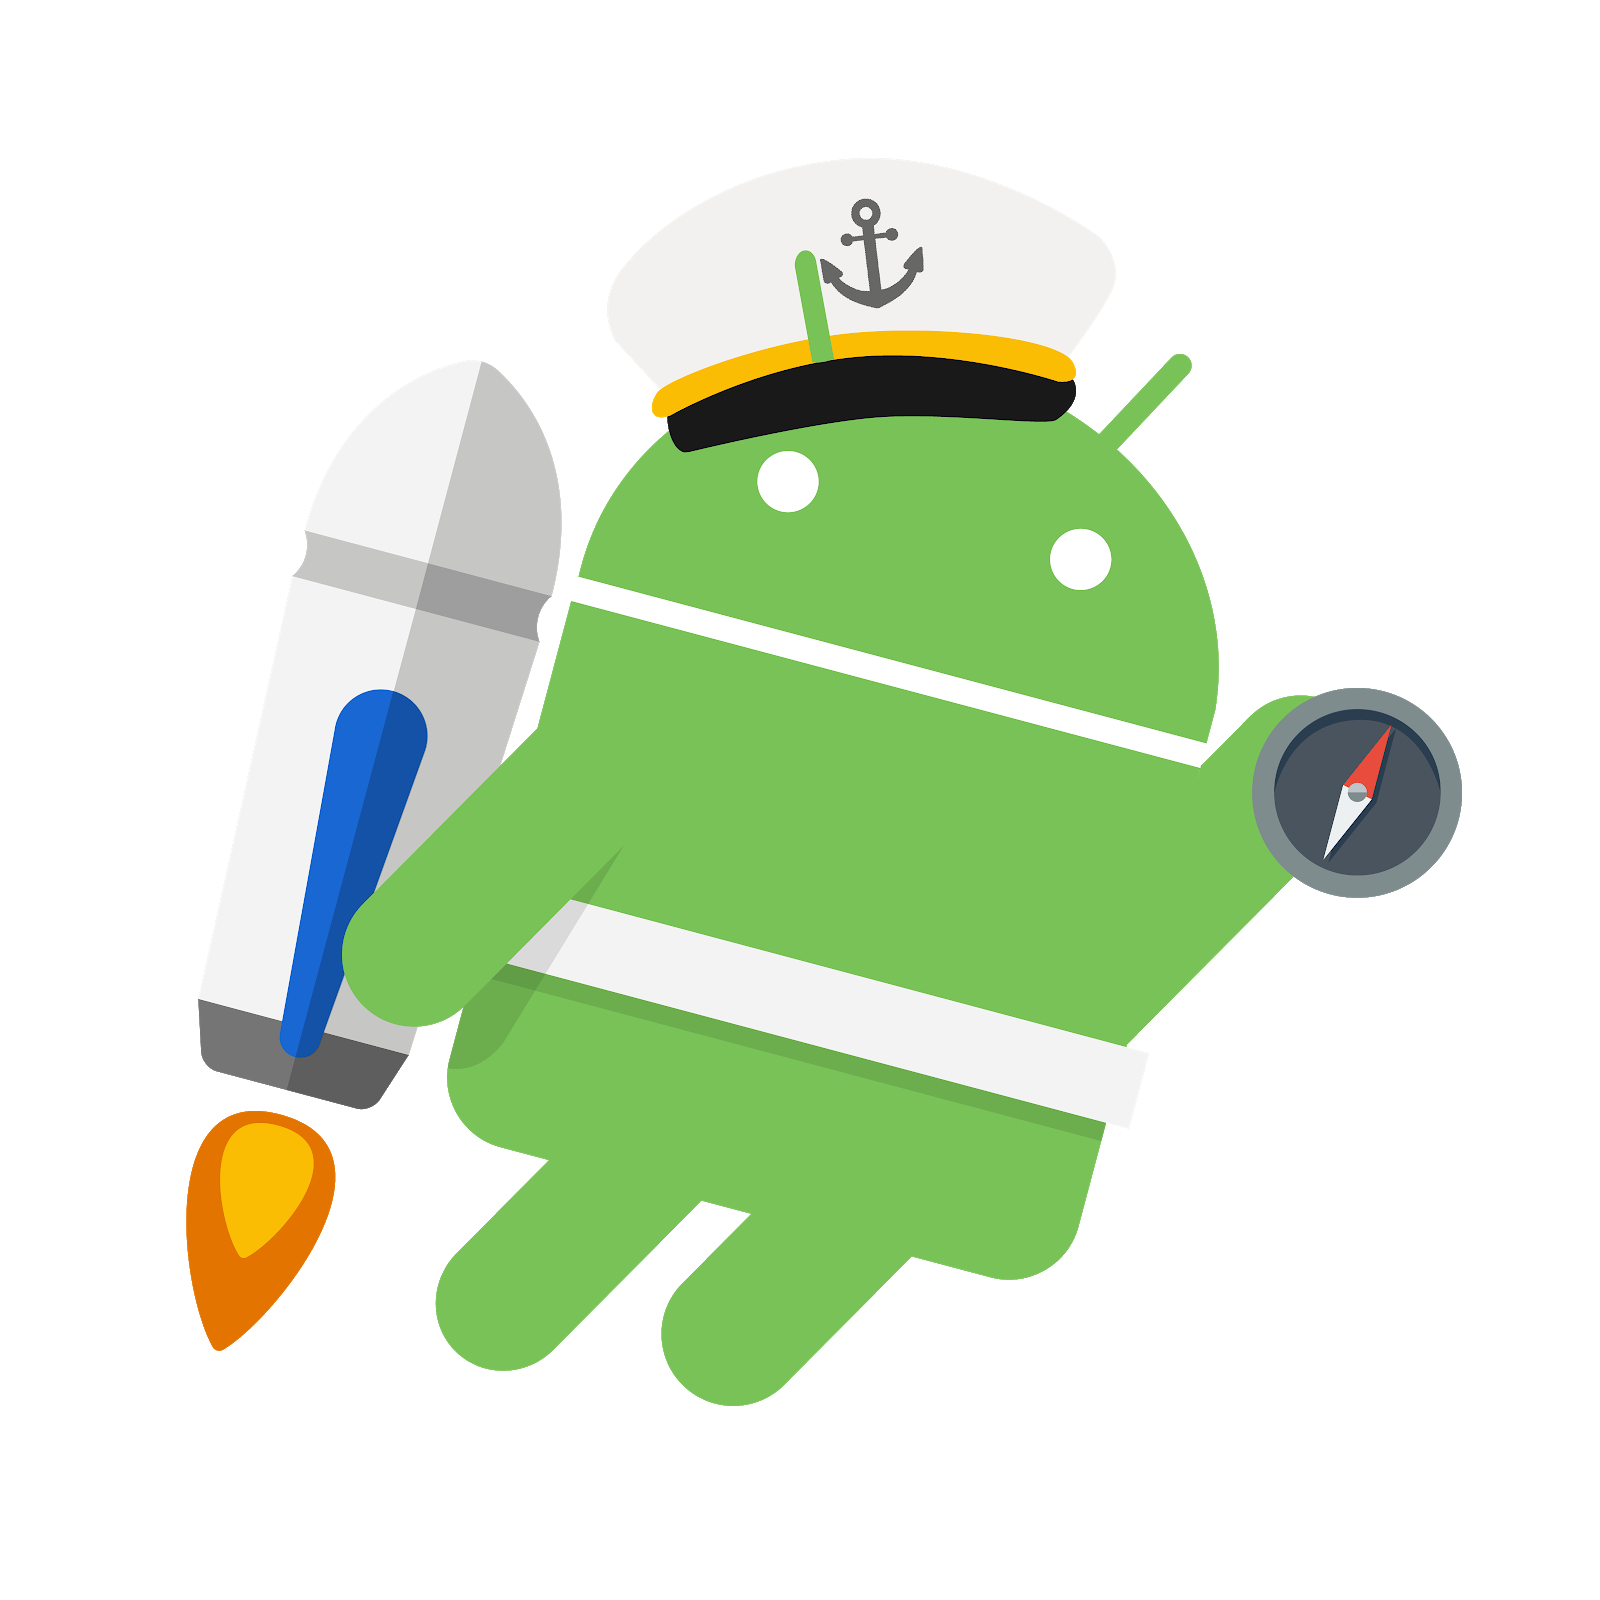 Animated Png For Android - Android Developers Blog: Android Jetpack Navigation Stable Release